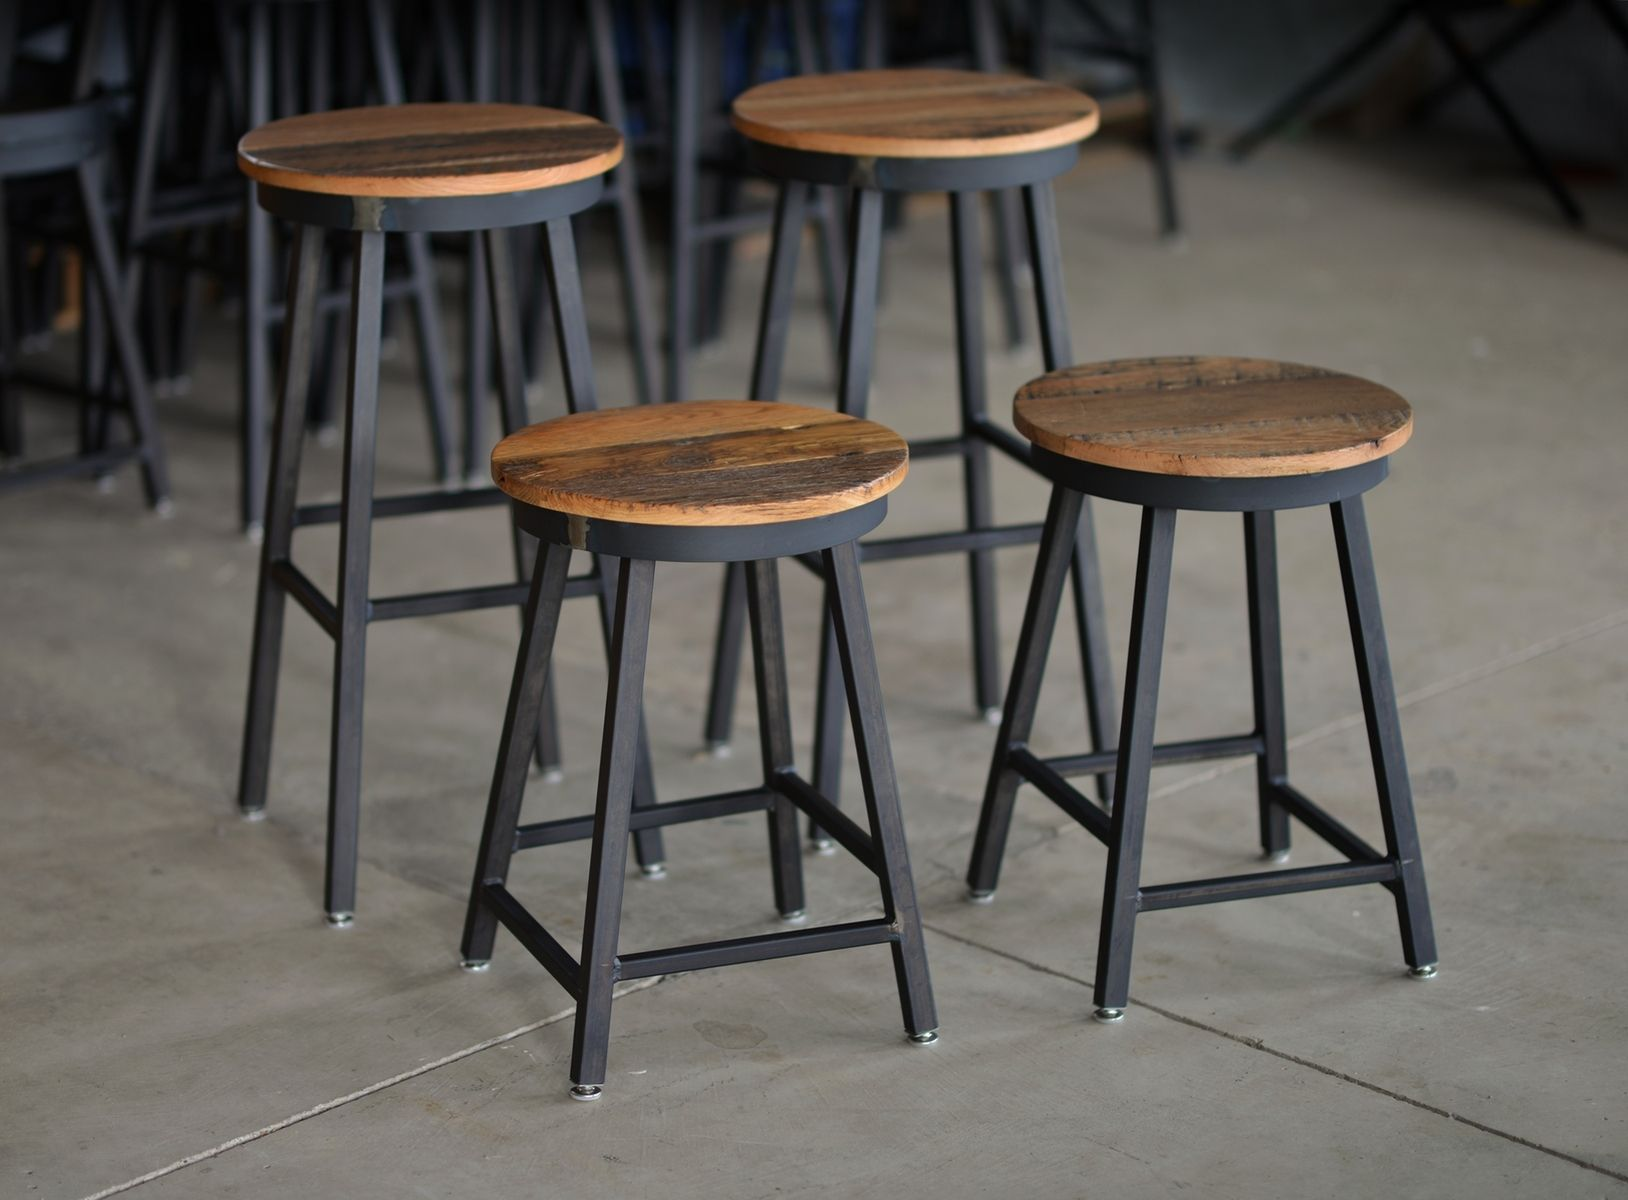 Remarkable Reclaimed Barnboard Oak Custom Raw Steel Bar Stools Lamtechconsult Wood Chair Design Ideas Lamtechconsultcom